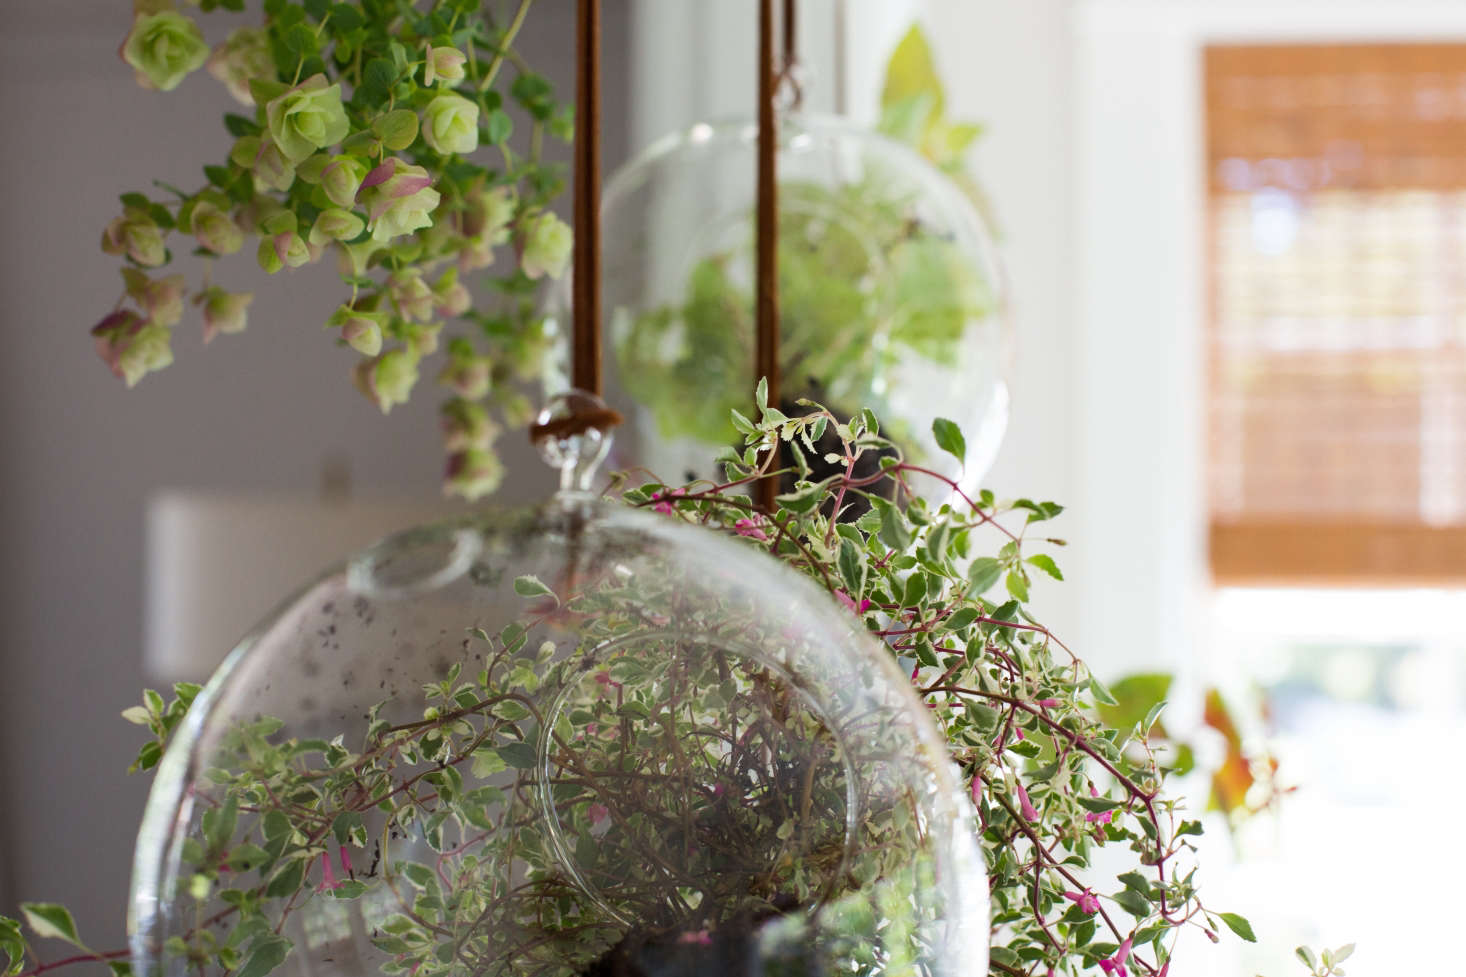 Photograph by Mimi Giboin for Gardenista. For more, see Fuchsias: Rethinking Grandma&#8